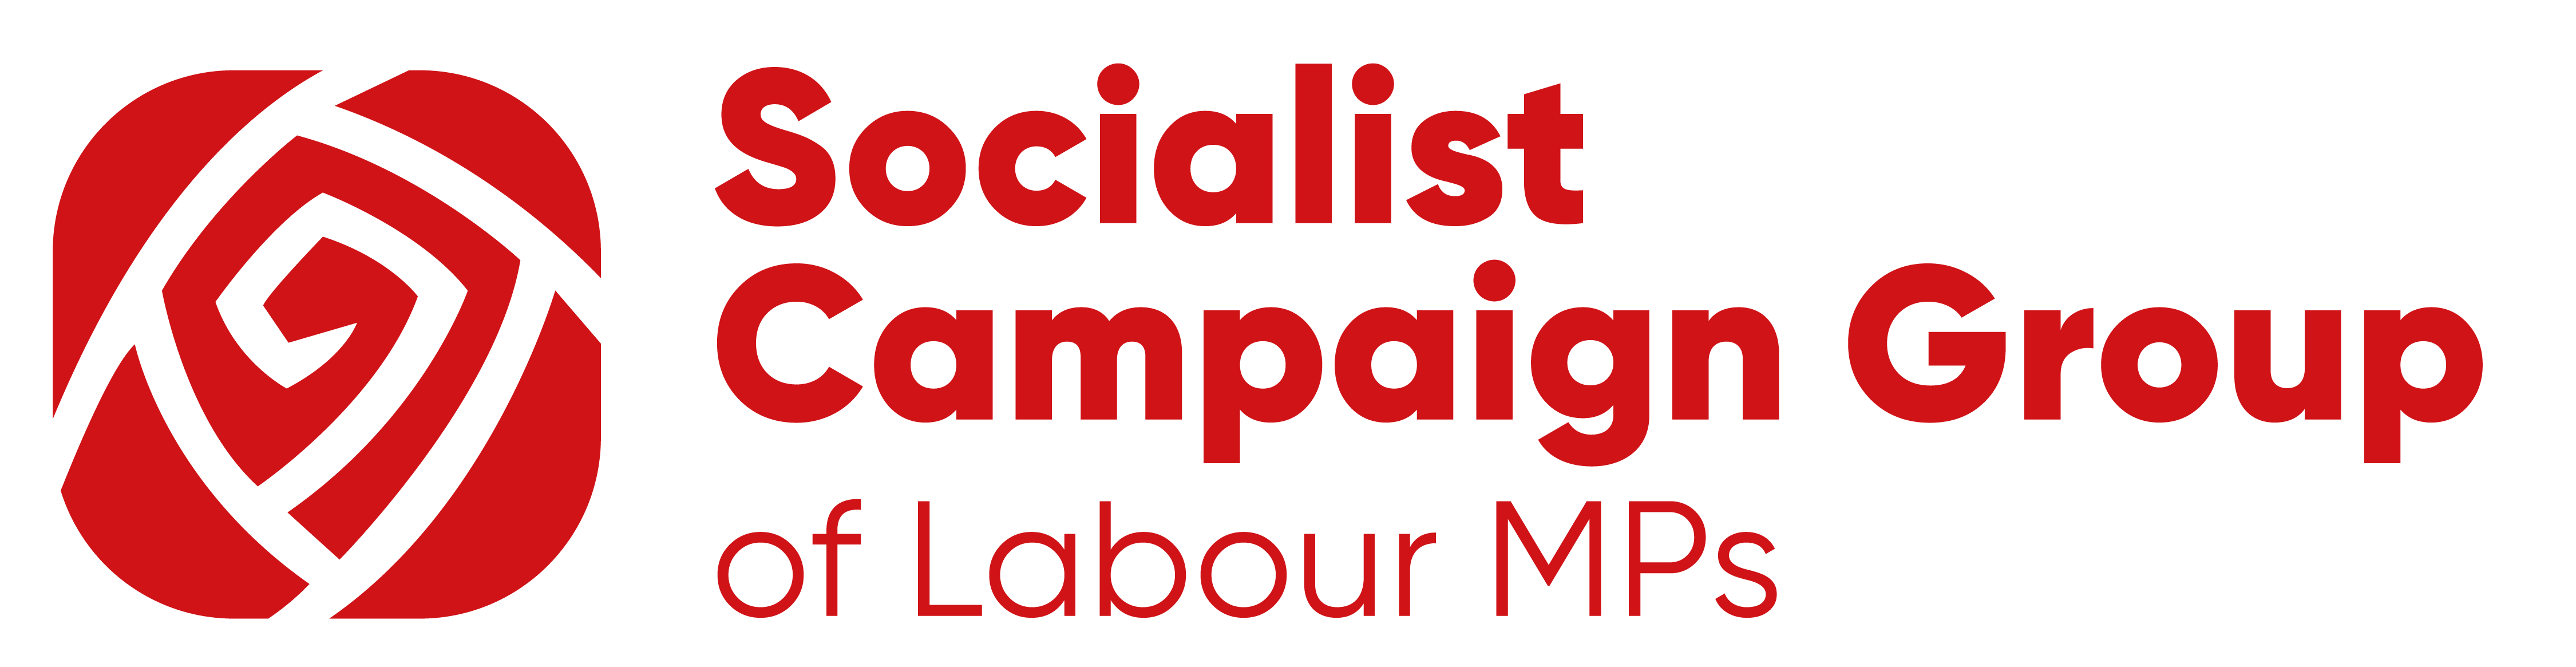 Socialist Campaign Group